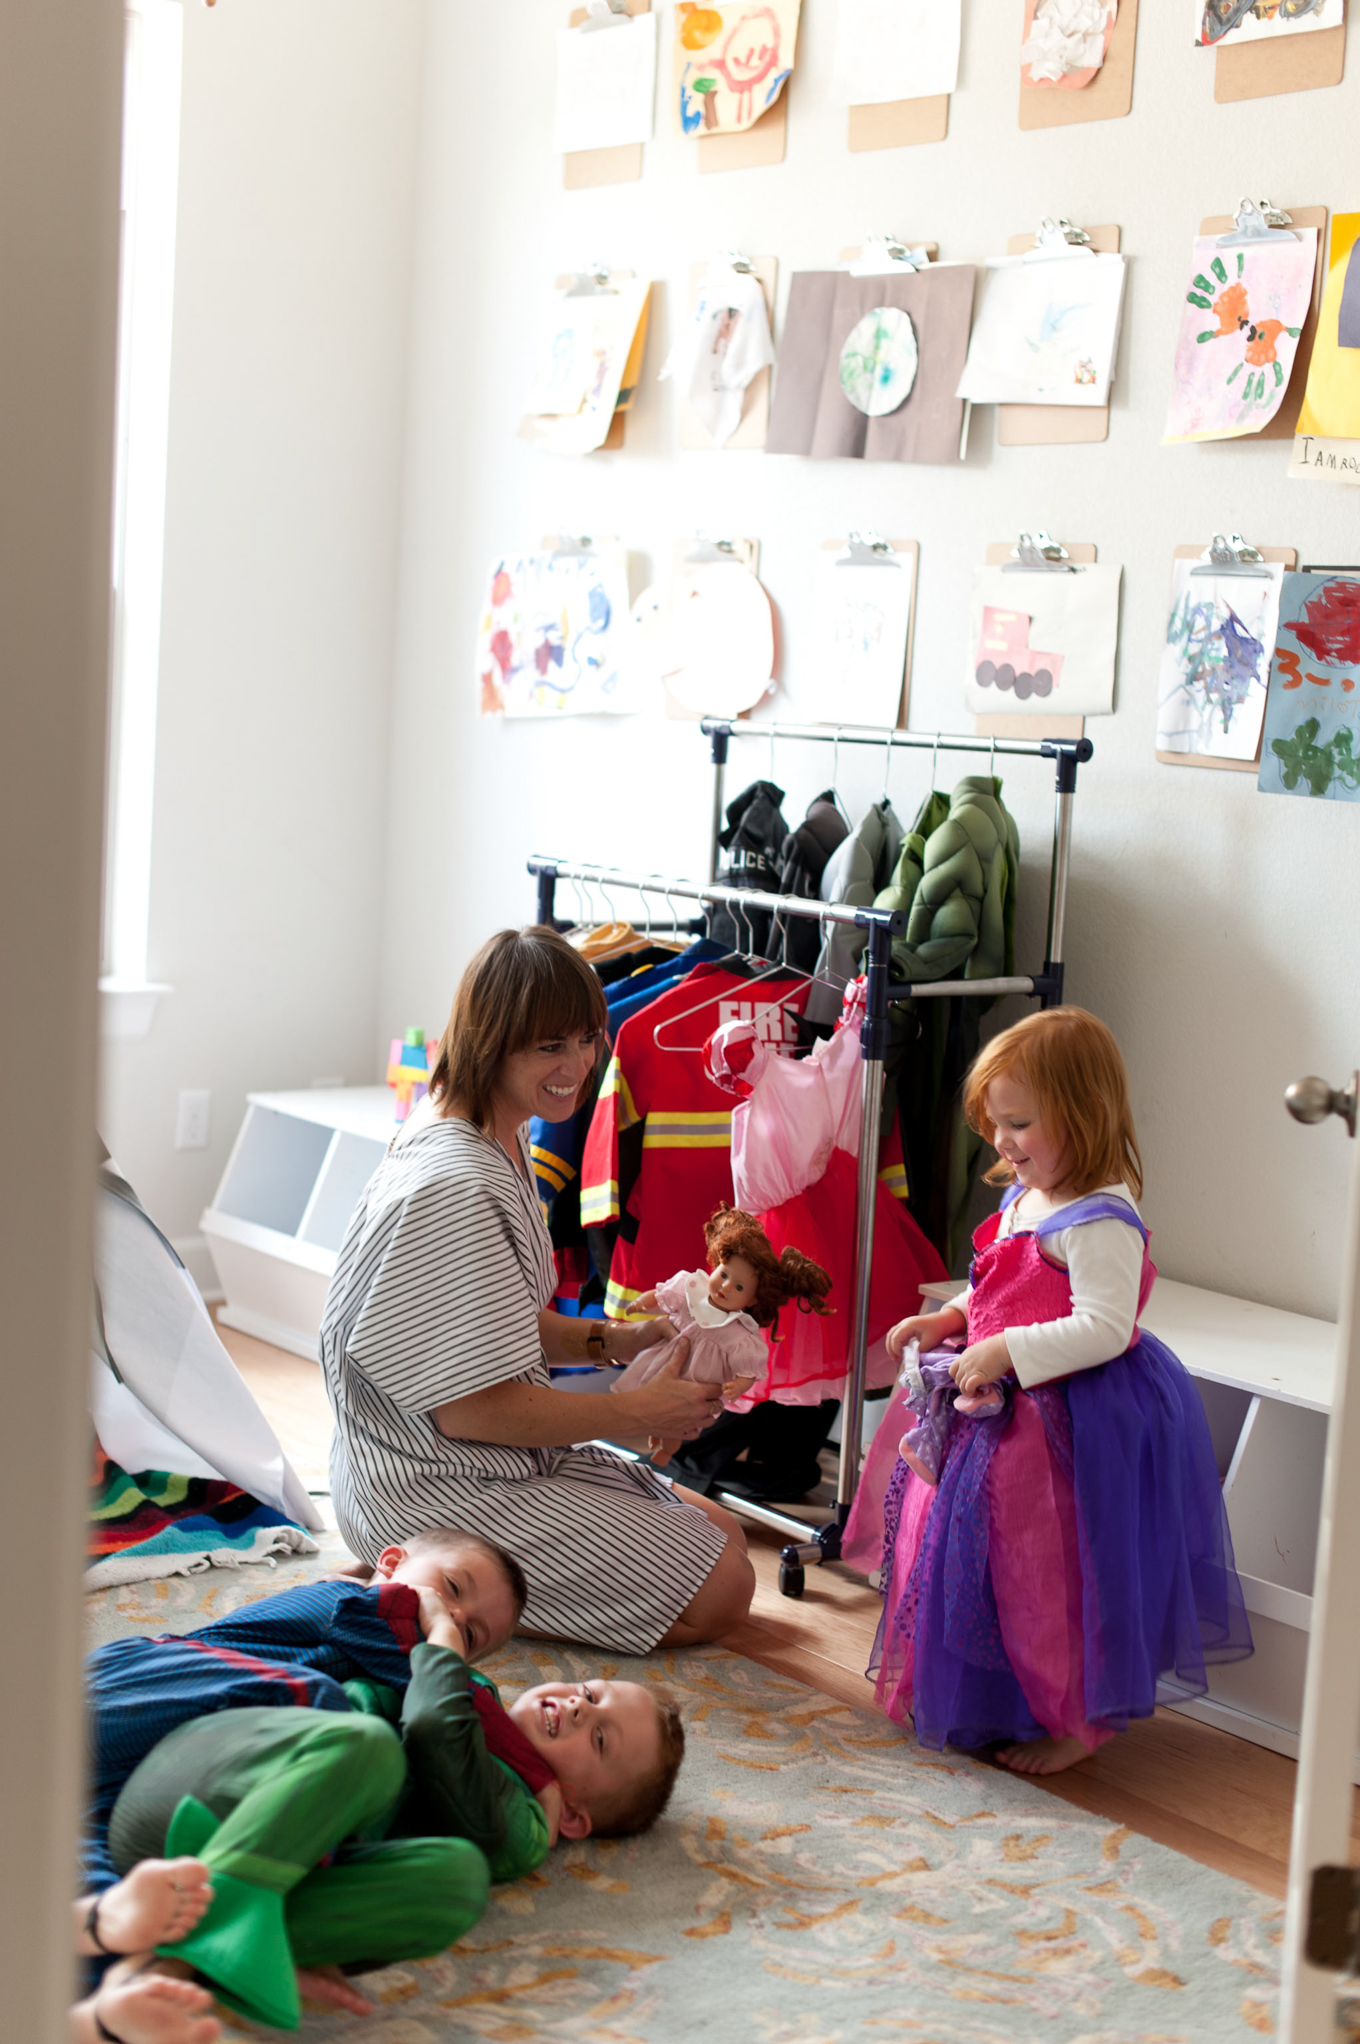 A year without buying anything new? Could you do it? I don't know if I could follow through but I've been so inspired by this family's commitment to a year of without spending. Read more about the reasons they're taking on this challenge and follow along with their story in 2017!